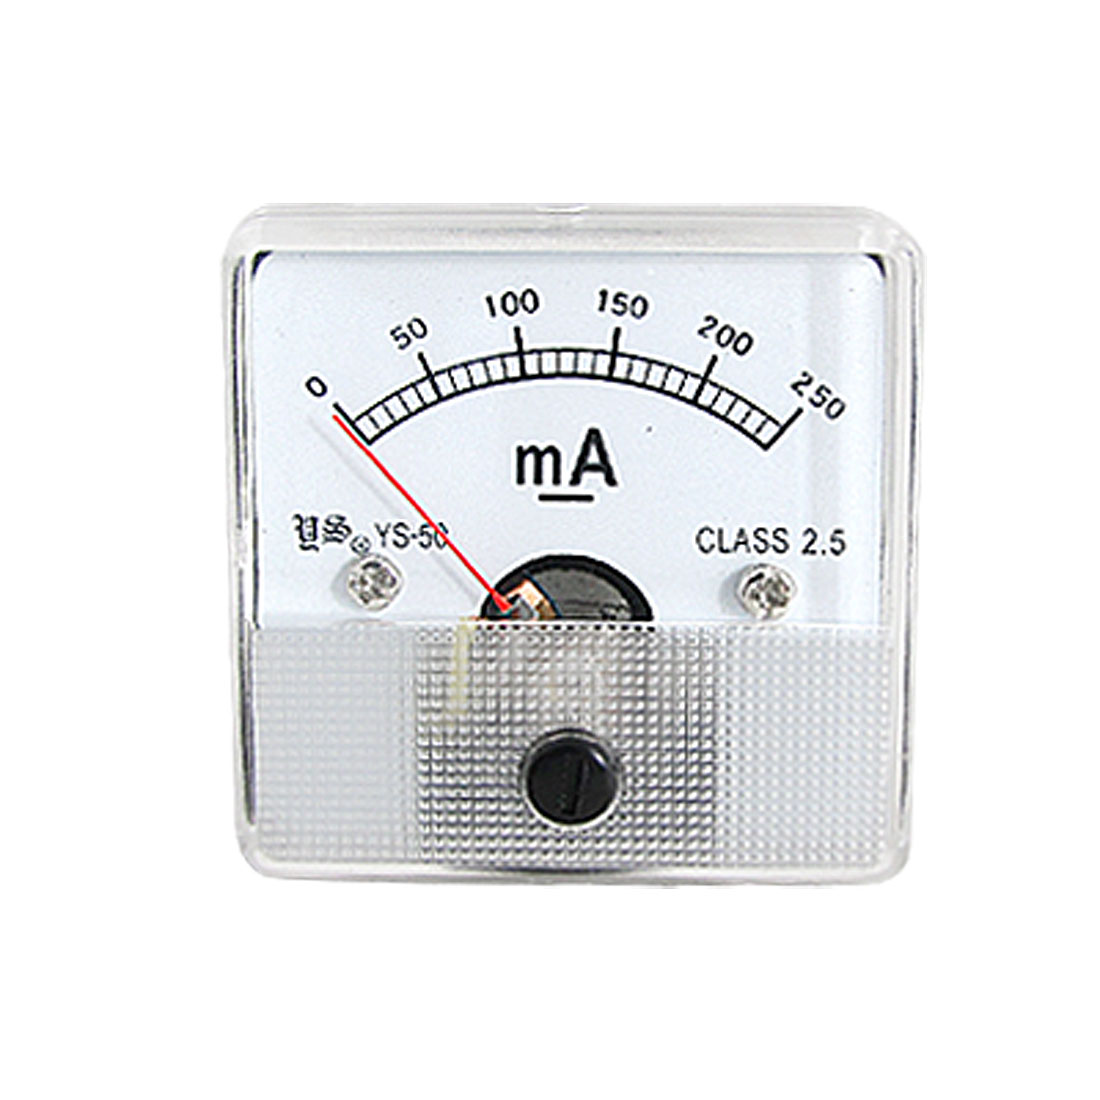 Class 2.5 DC 0-250mA Analog Amperemeter Measuring Head